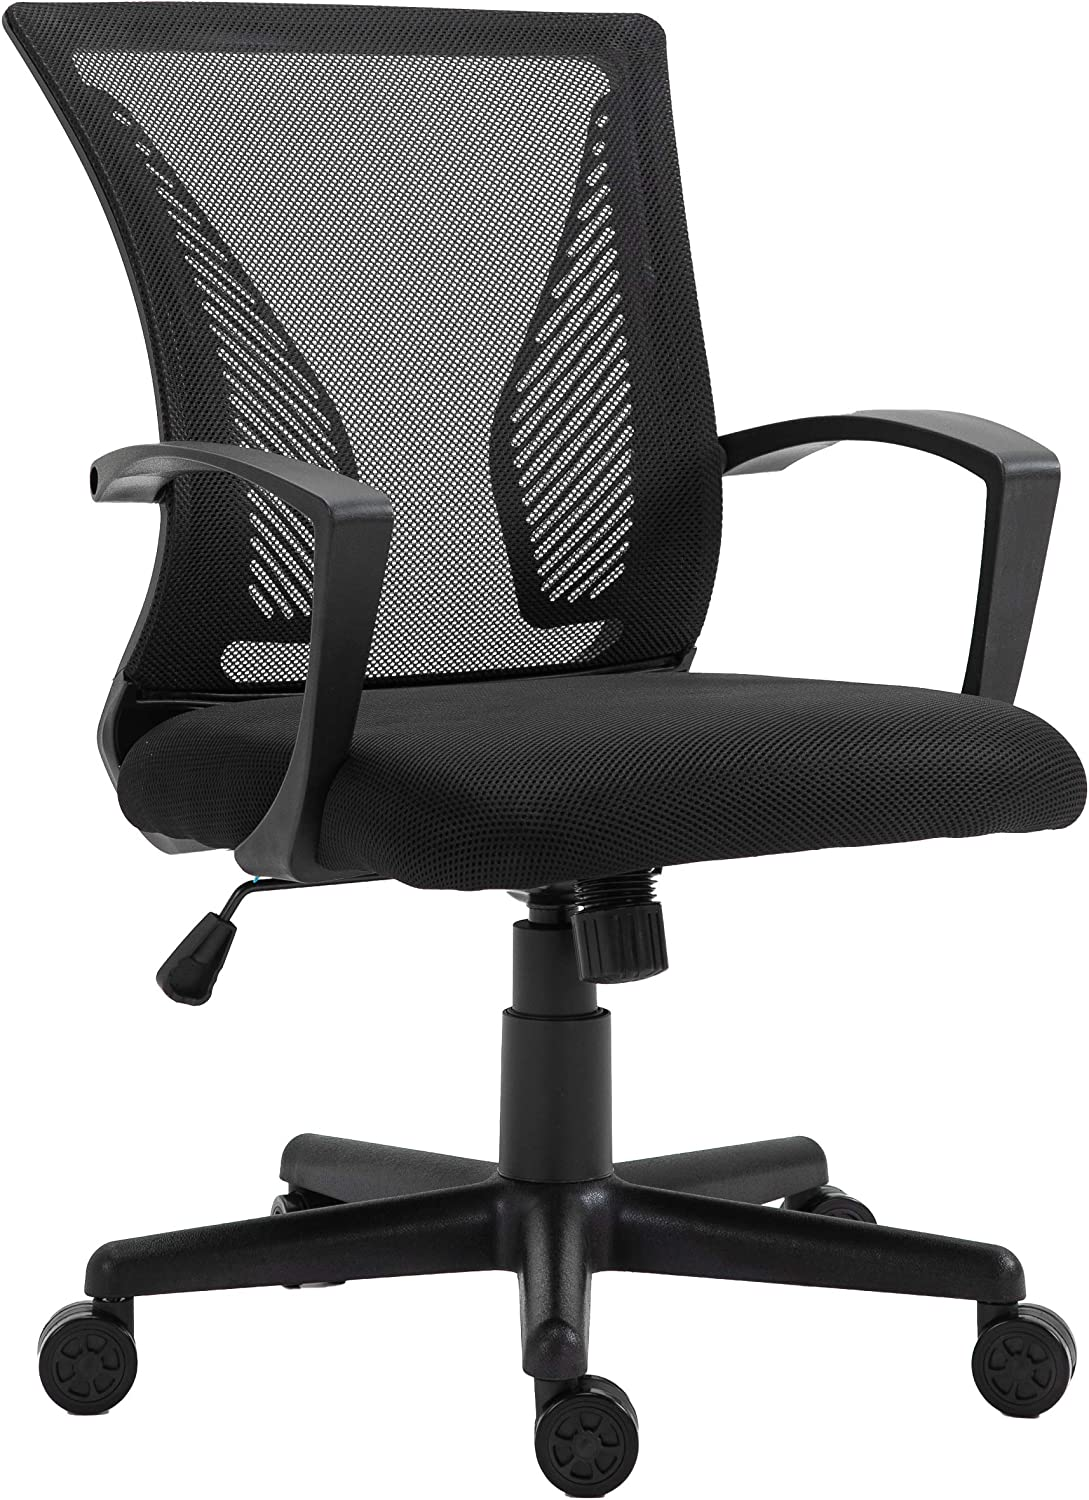 HALTER Desk Chair - Black Gaming Mesh Chair - Adjustable and Comfortable Ergonomic Chair with Armrests and Wing Lumbar Support - Ideal Gaming or Home Office Chair